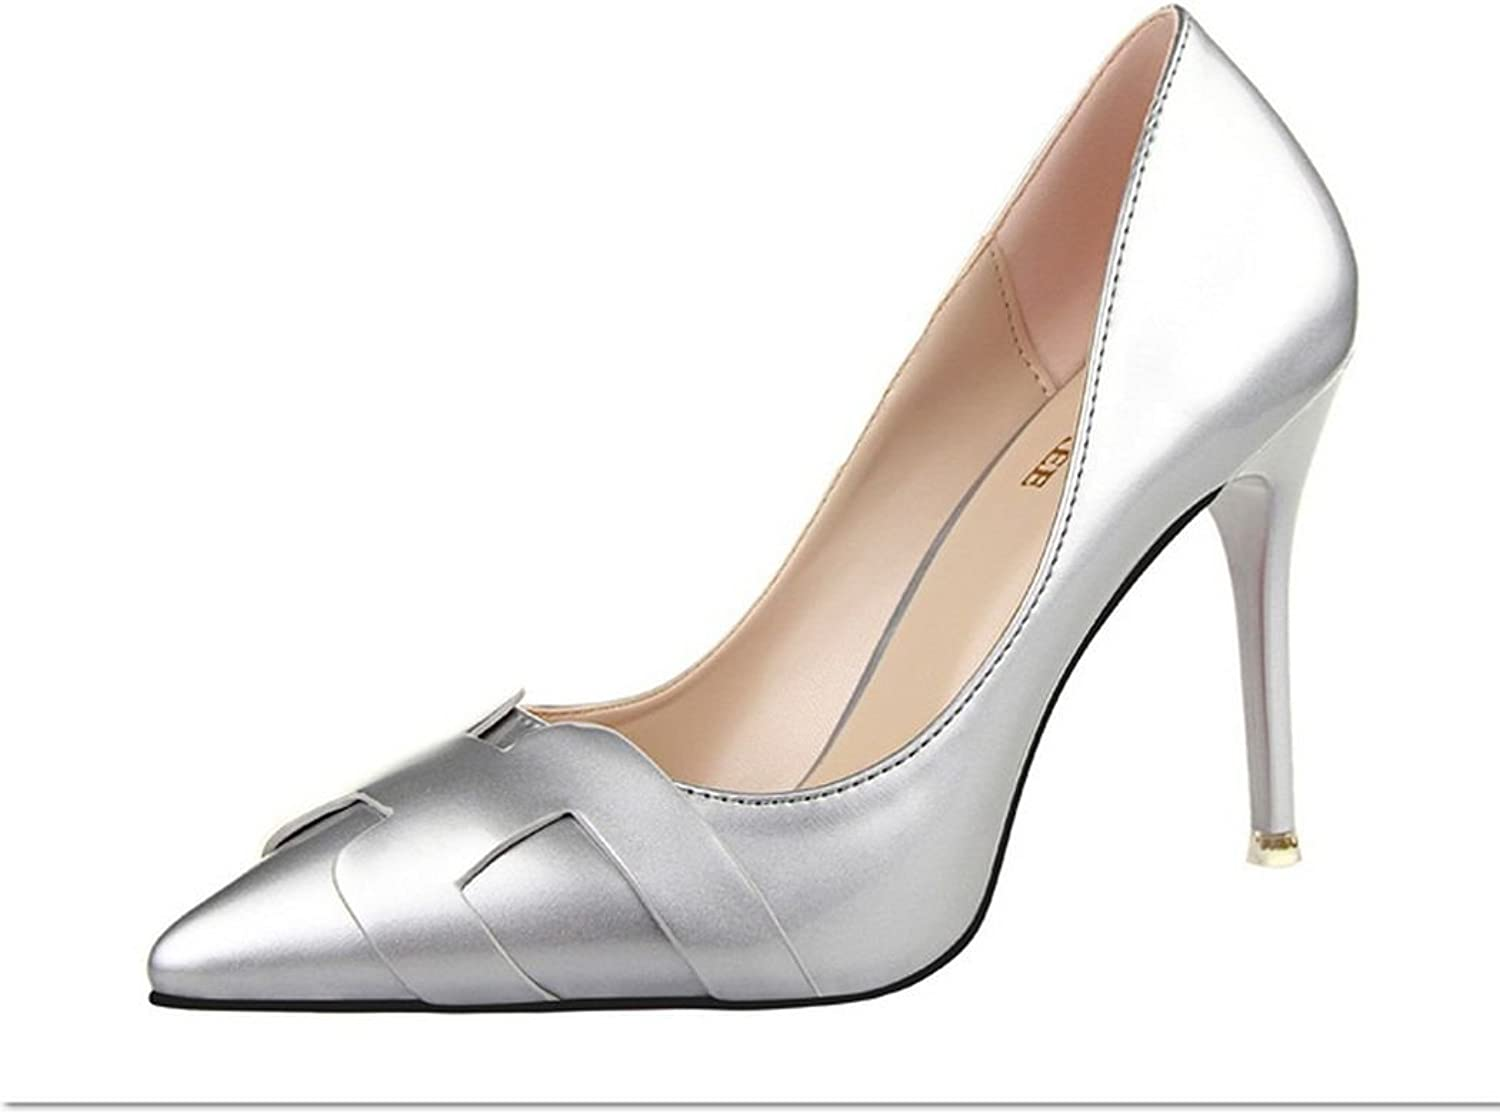 R.Y.S.E Ryse Women's Fashionable Decoration Leather Simple Classic Temperament High Heels Pointy shoes(38 M EU 7.5 B(M) US, Silver)